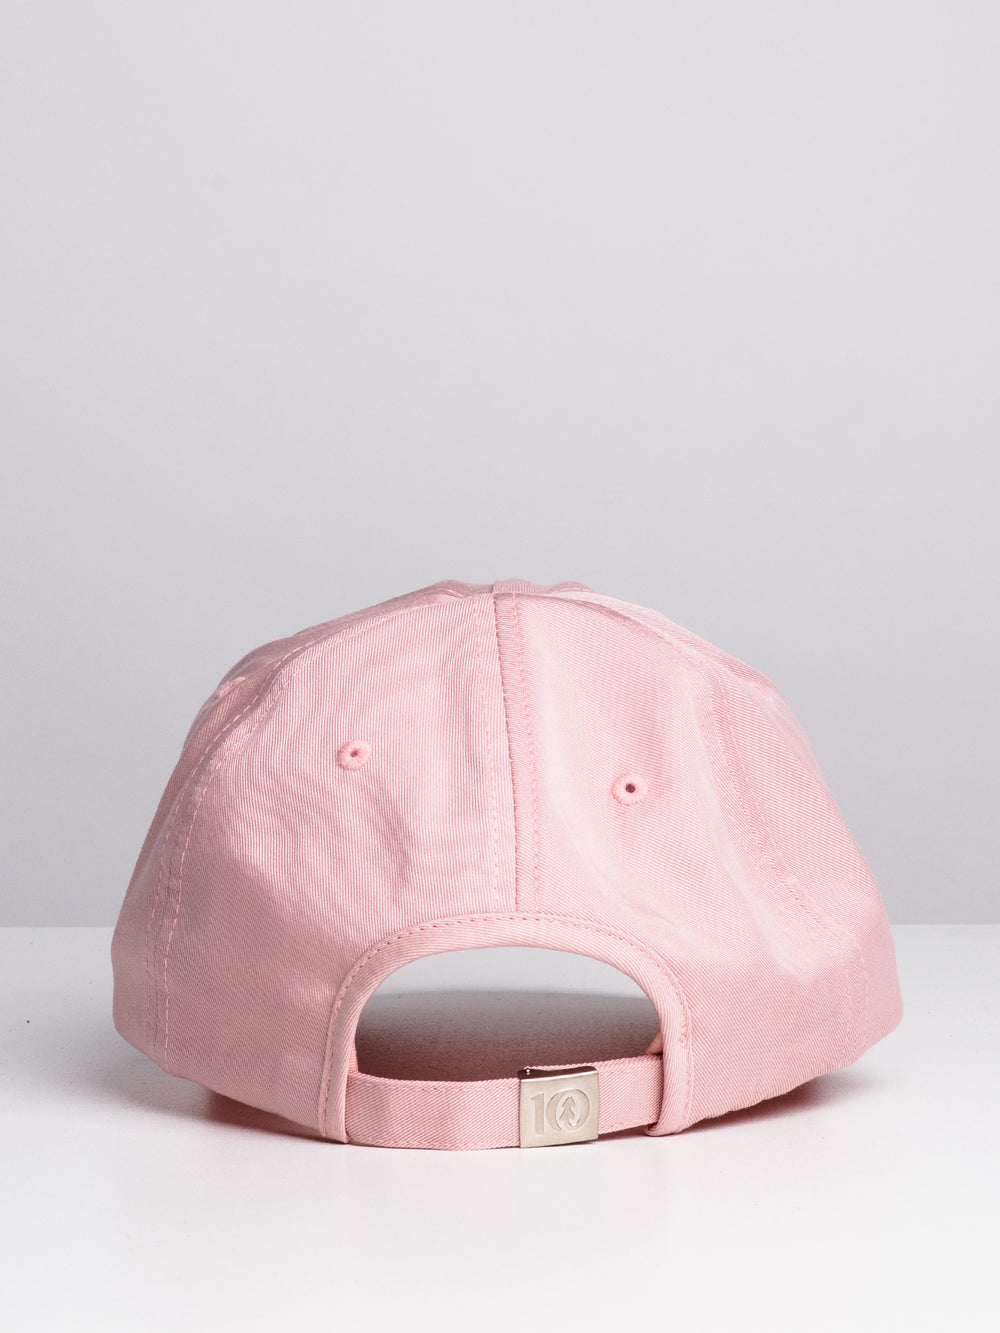 PEAK HAT - QUARTZ PINK